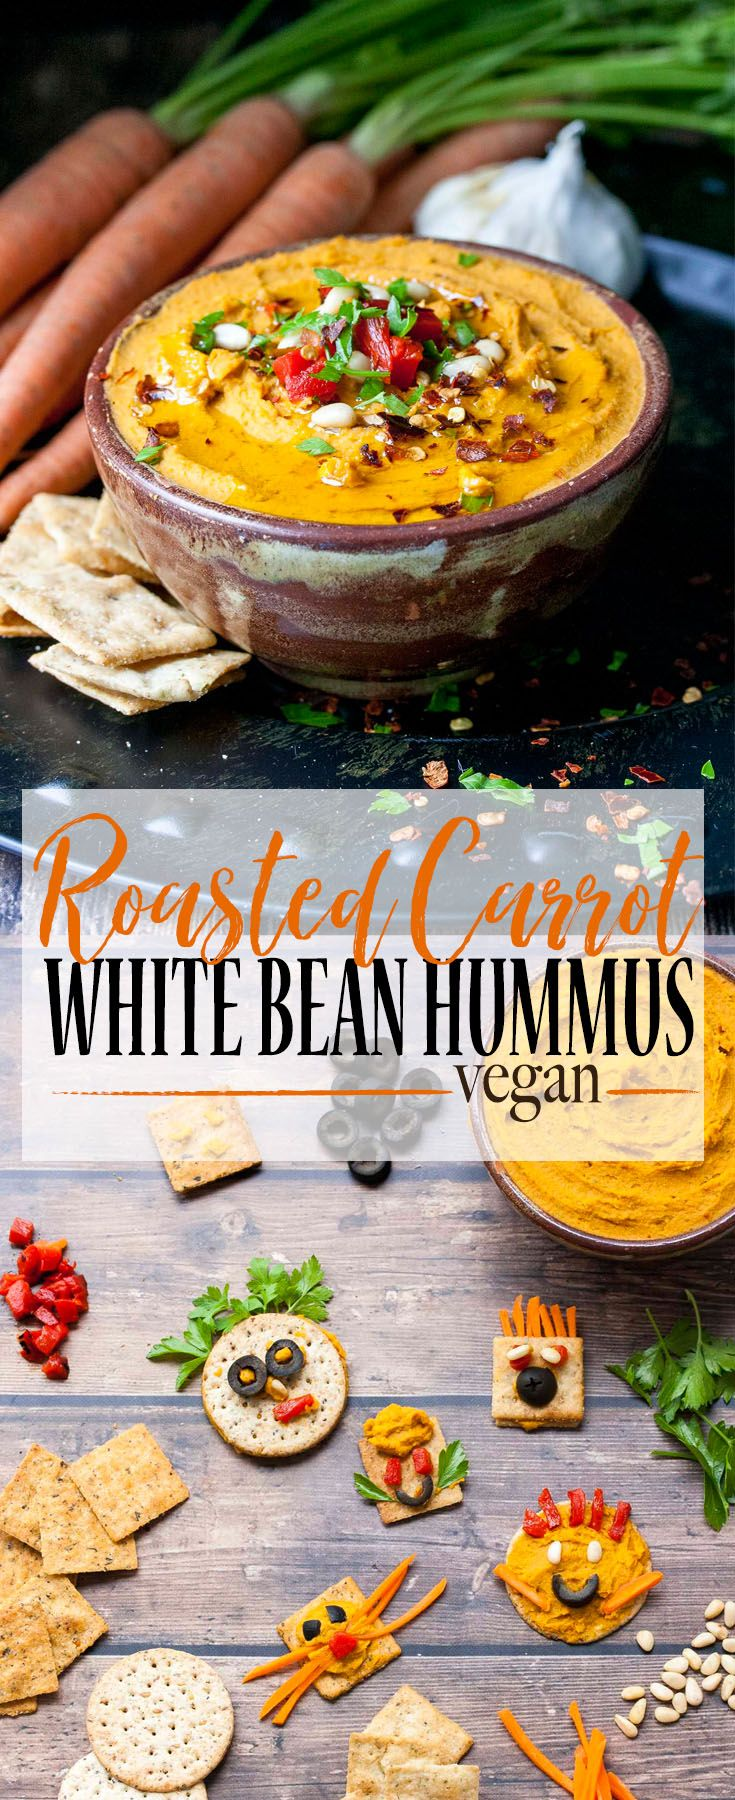 Roasted Carrot White  Bean Hummus